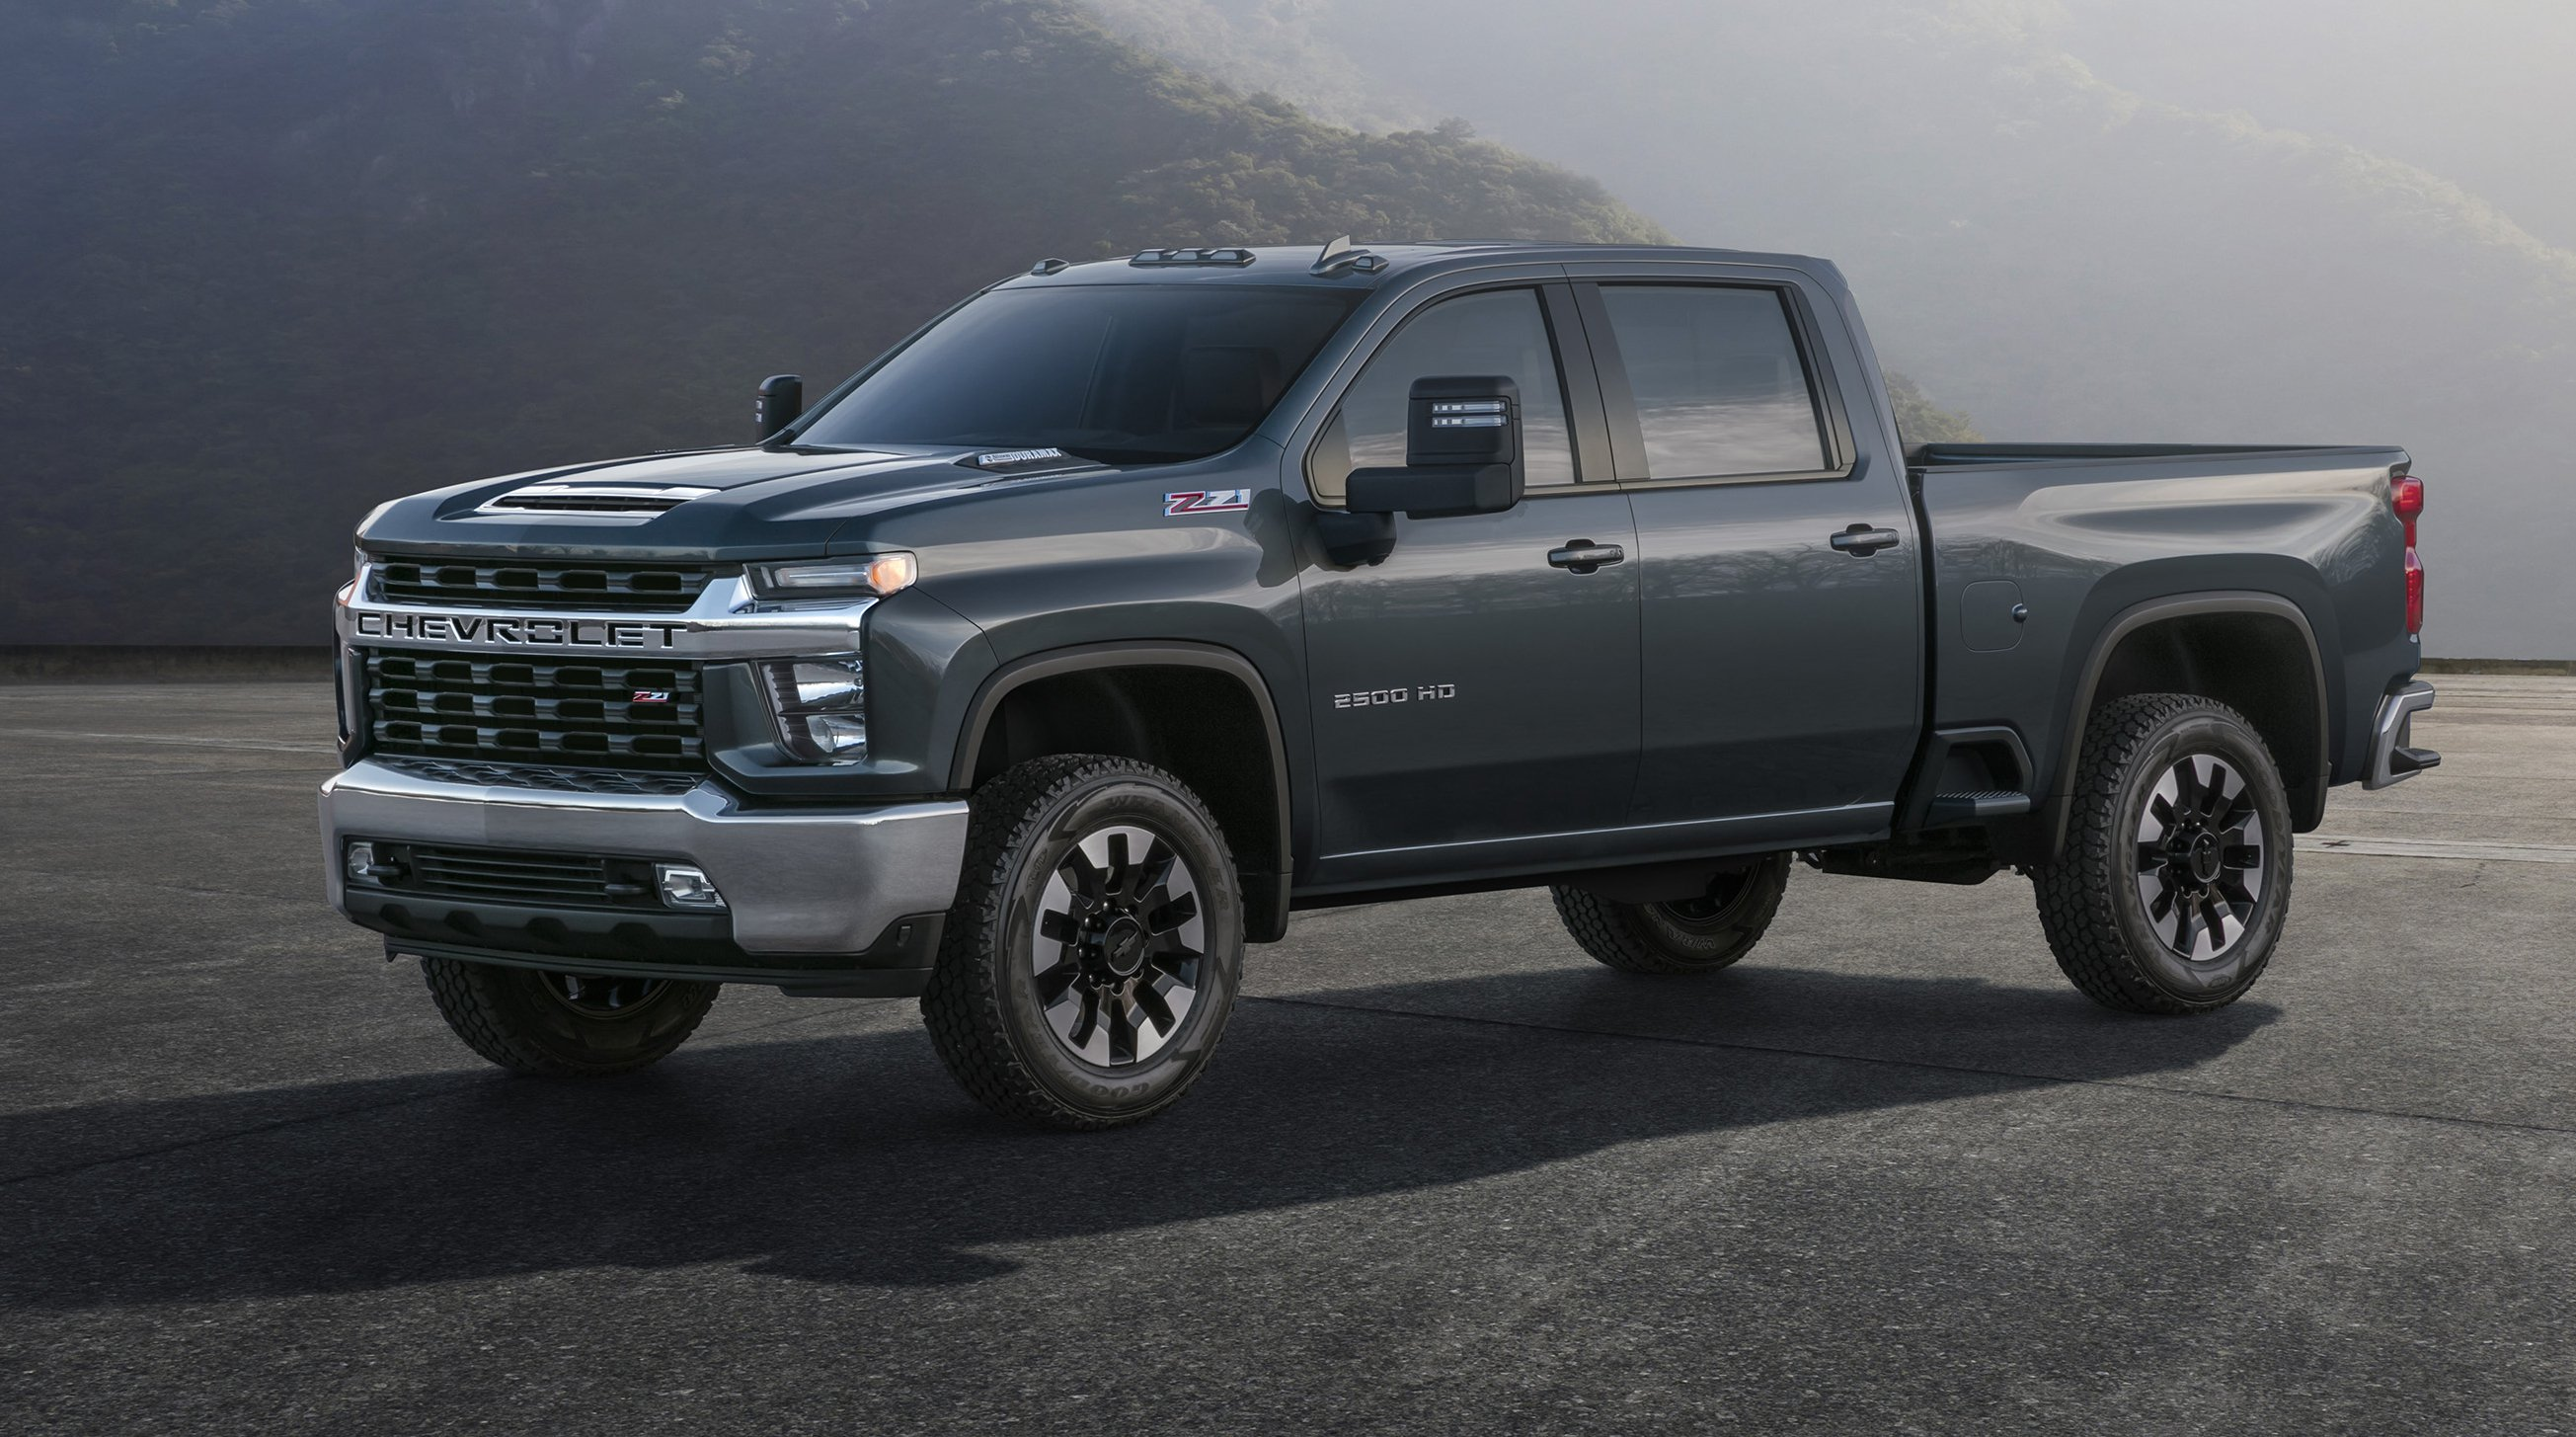 75 Best 2020 Silverado 1500 Price Design and Review